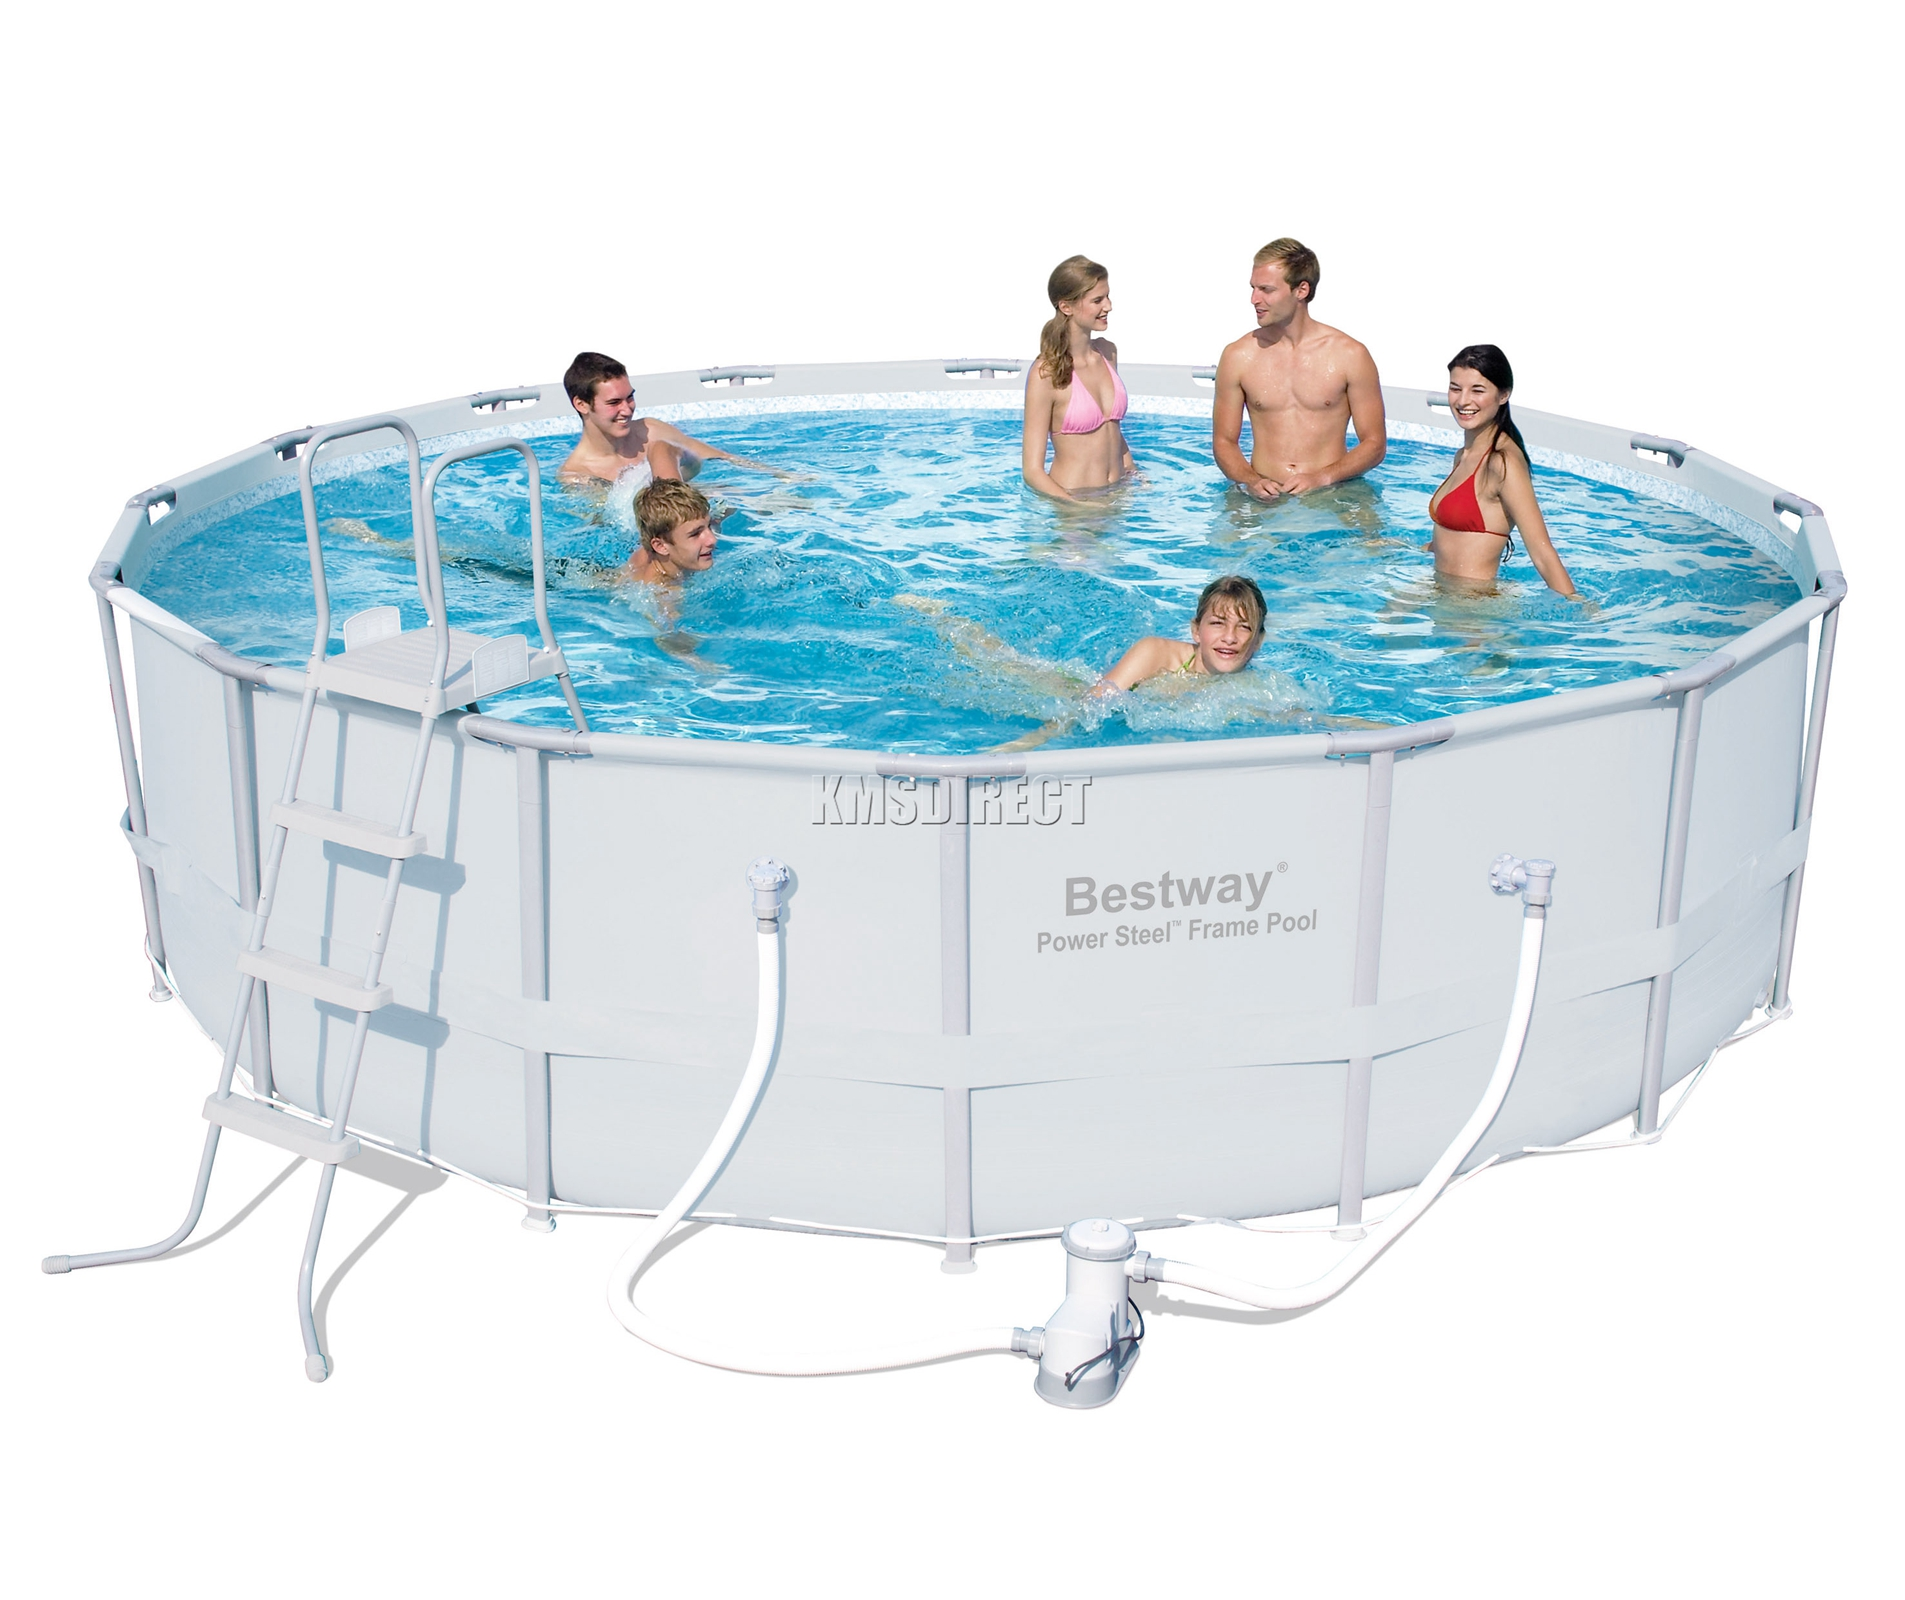 bestway power steel frame swimming pool set round 16ft x48inch filter pump 56451 ebay. Black Bedroom Furniture Sets. Home Design Ideas